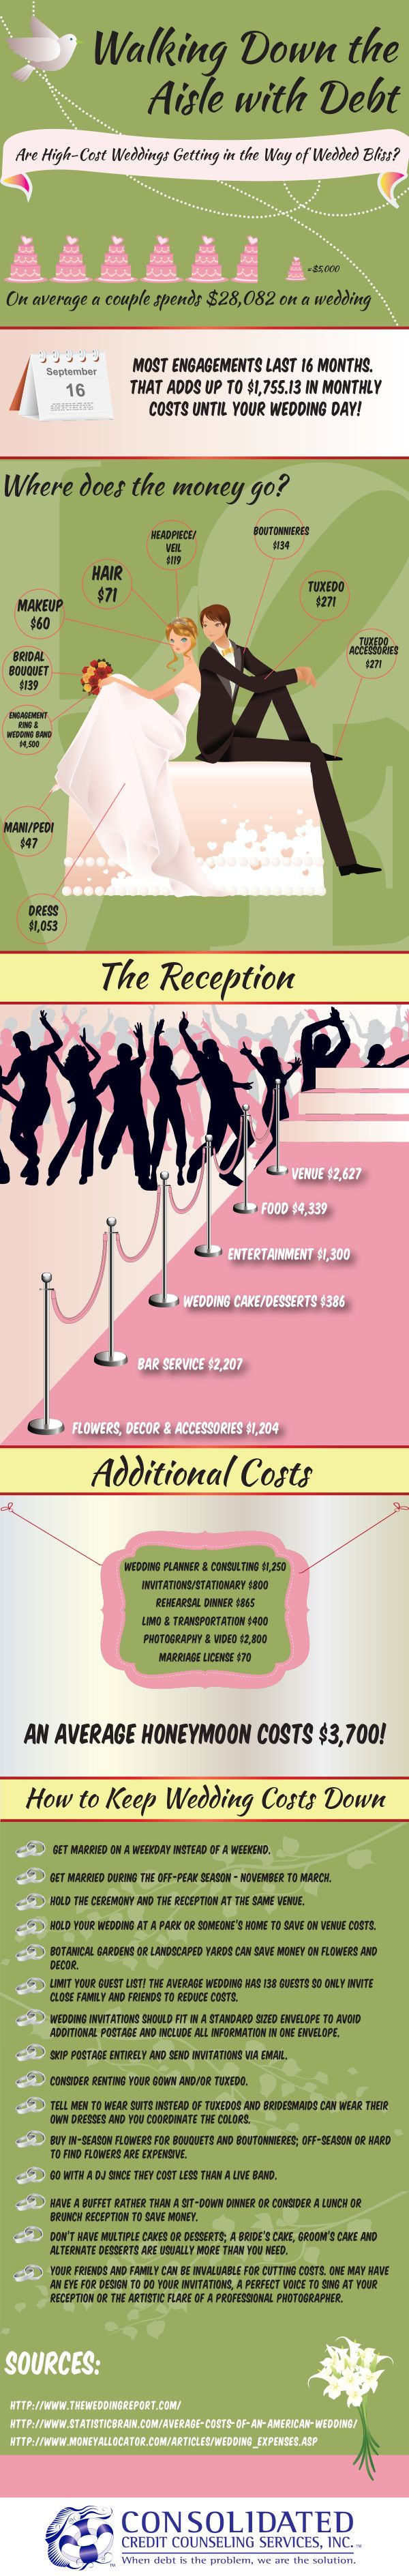 wedding cost infographic except im pretty sure the dress will